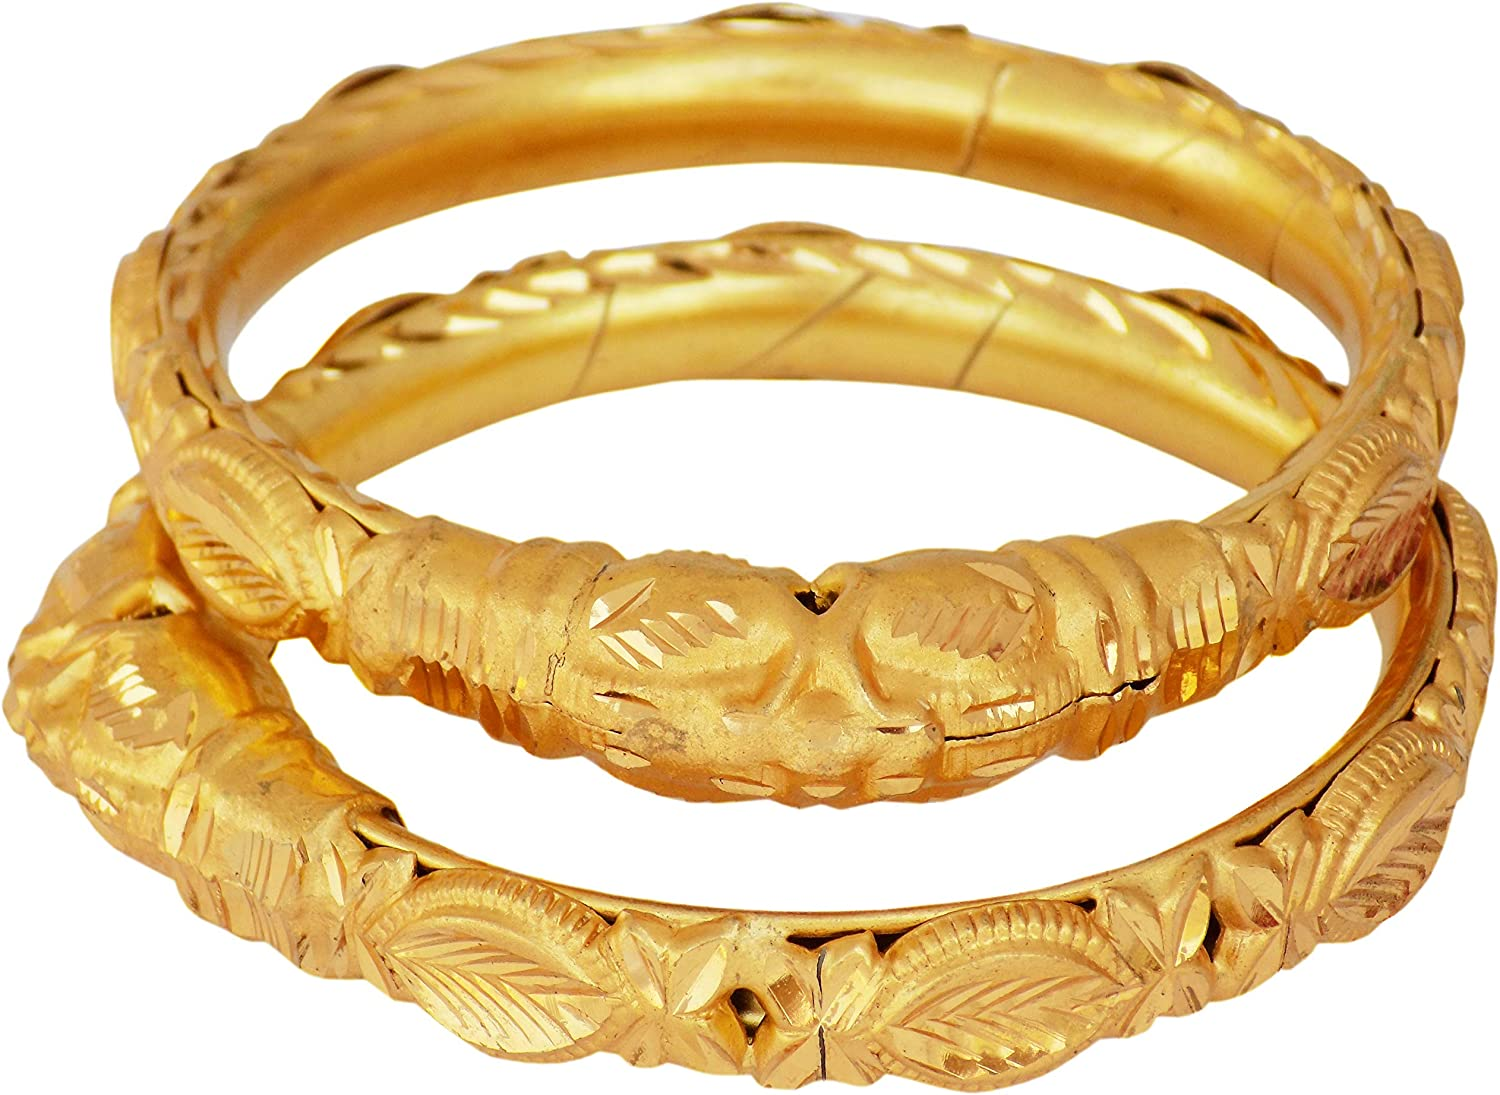 JD'Z COLLECTION Indian Gold Plated Bangles